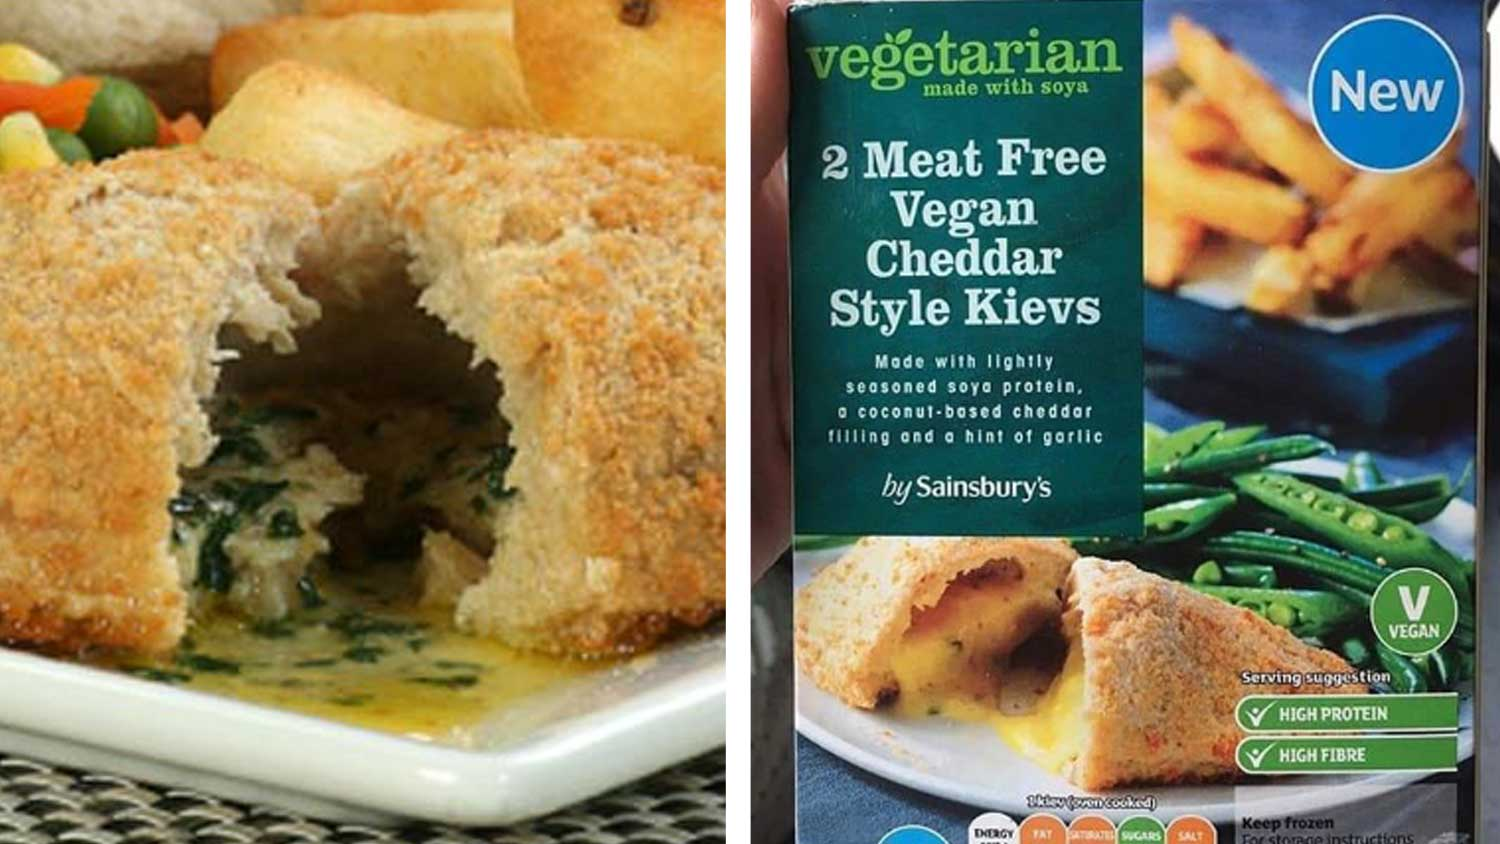 Sainsbury's Just Launched Vegan Cheddar Cheese Chicken Kievs